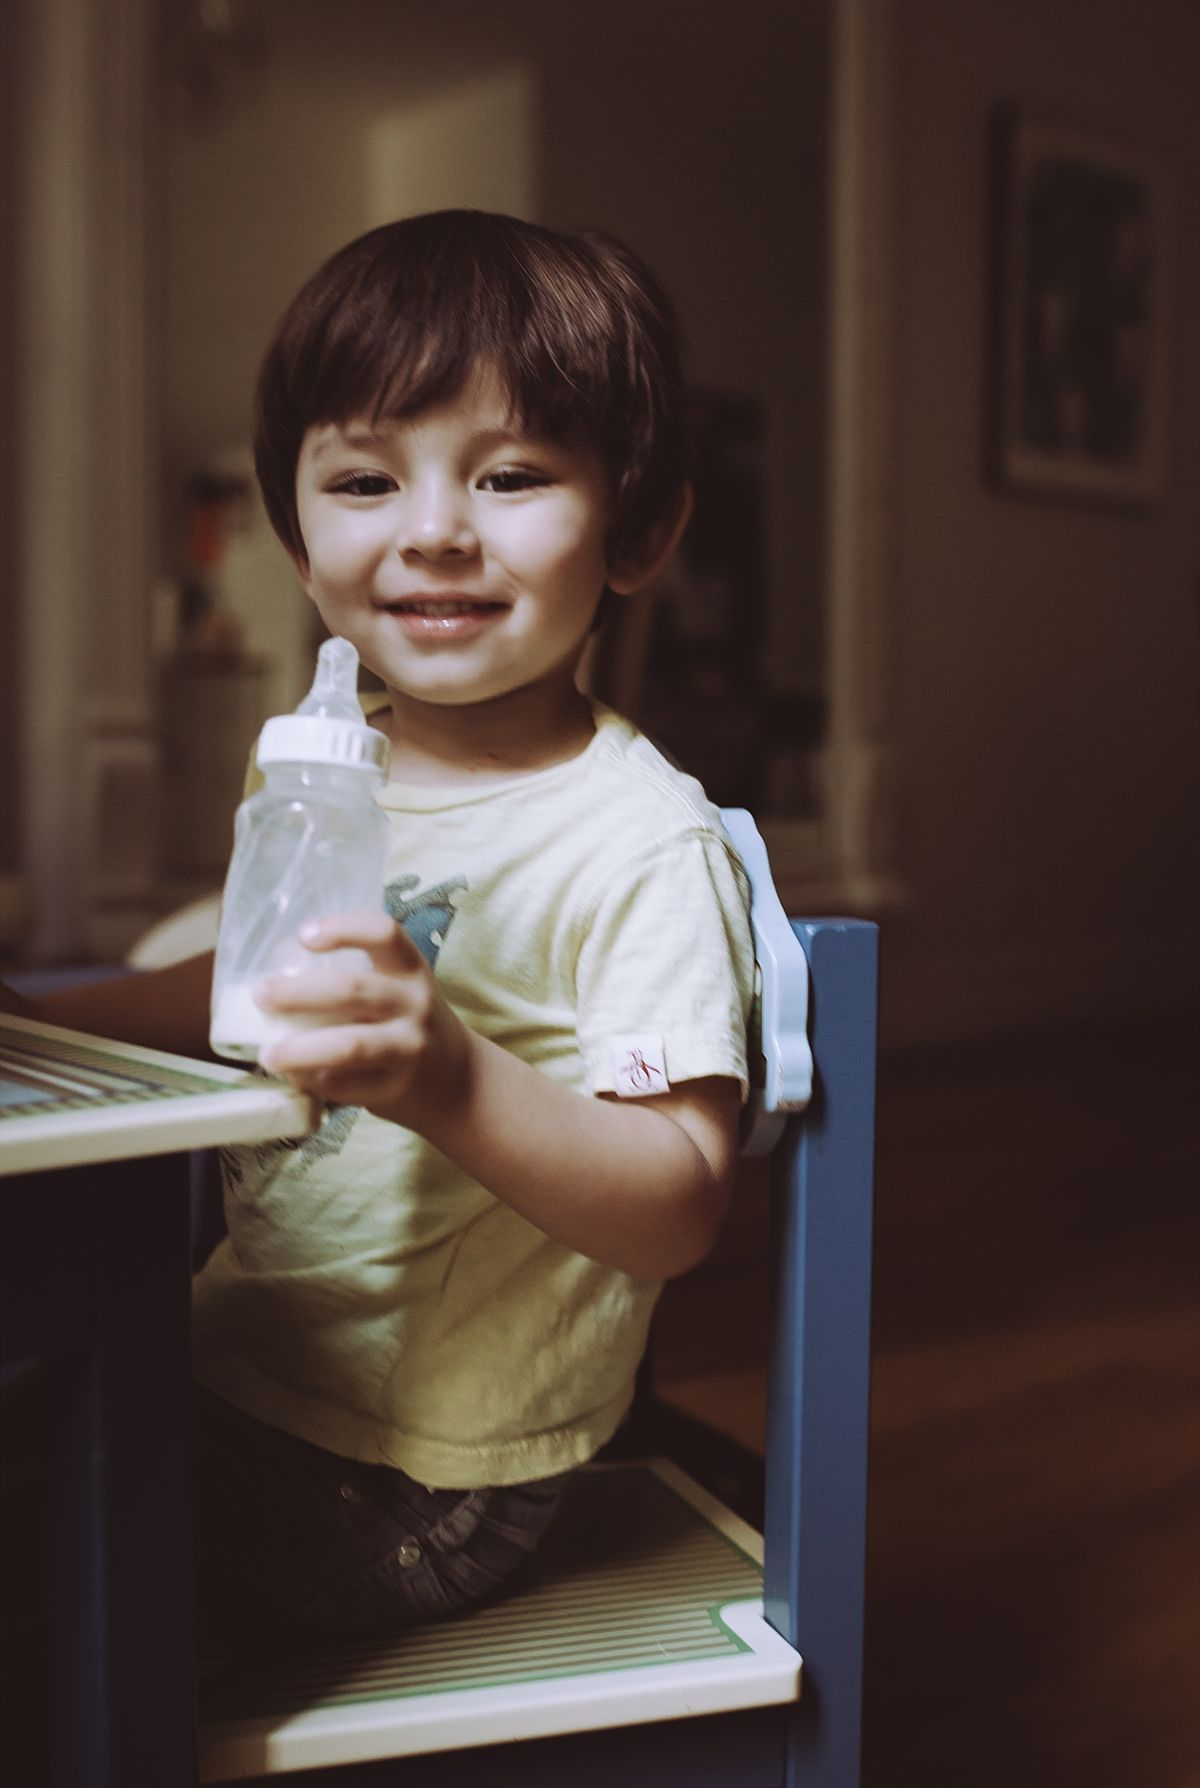 portrait of boy sitting at the table drinking a bottle of milk. photo by nyc family and newborn photographer krystil mcdowall